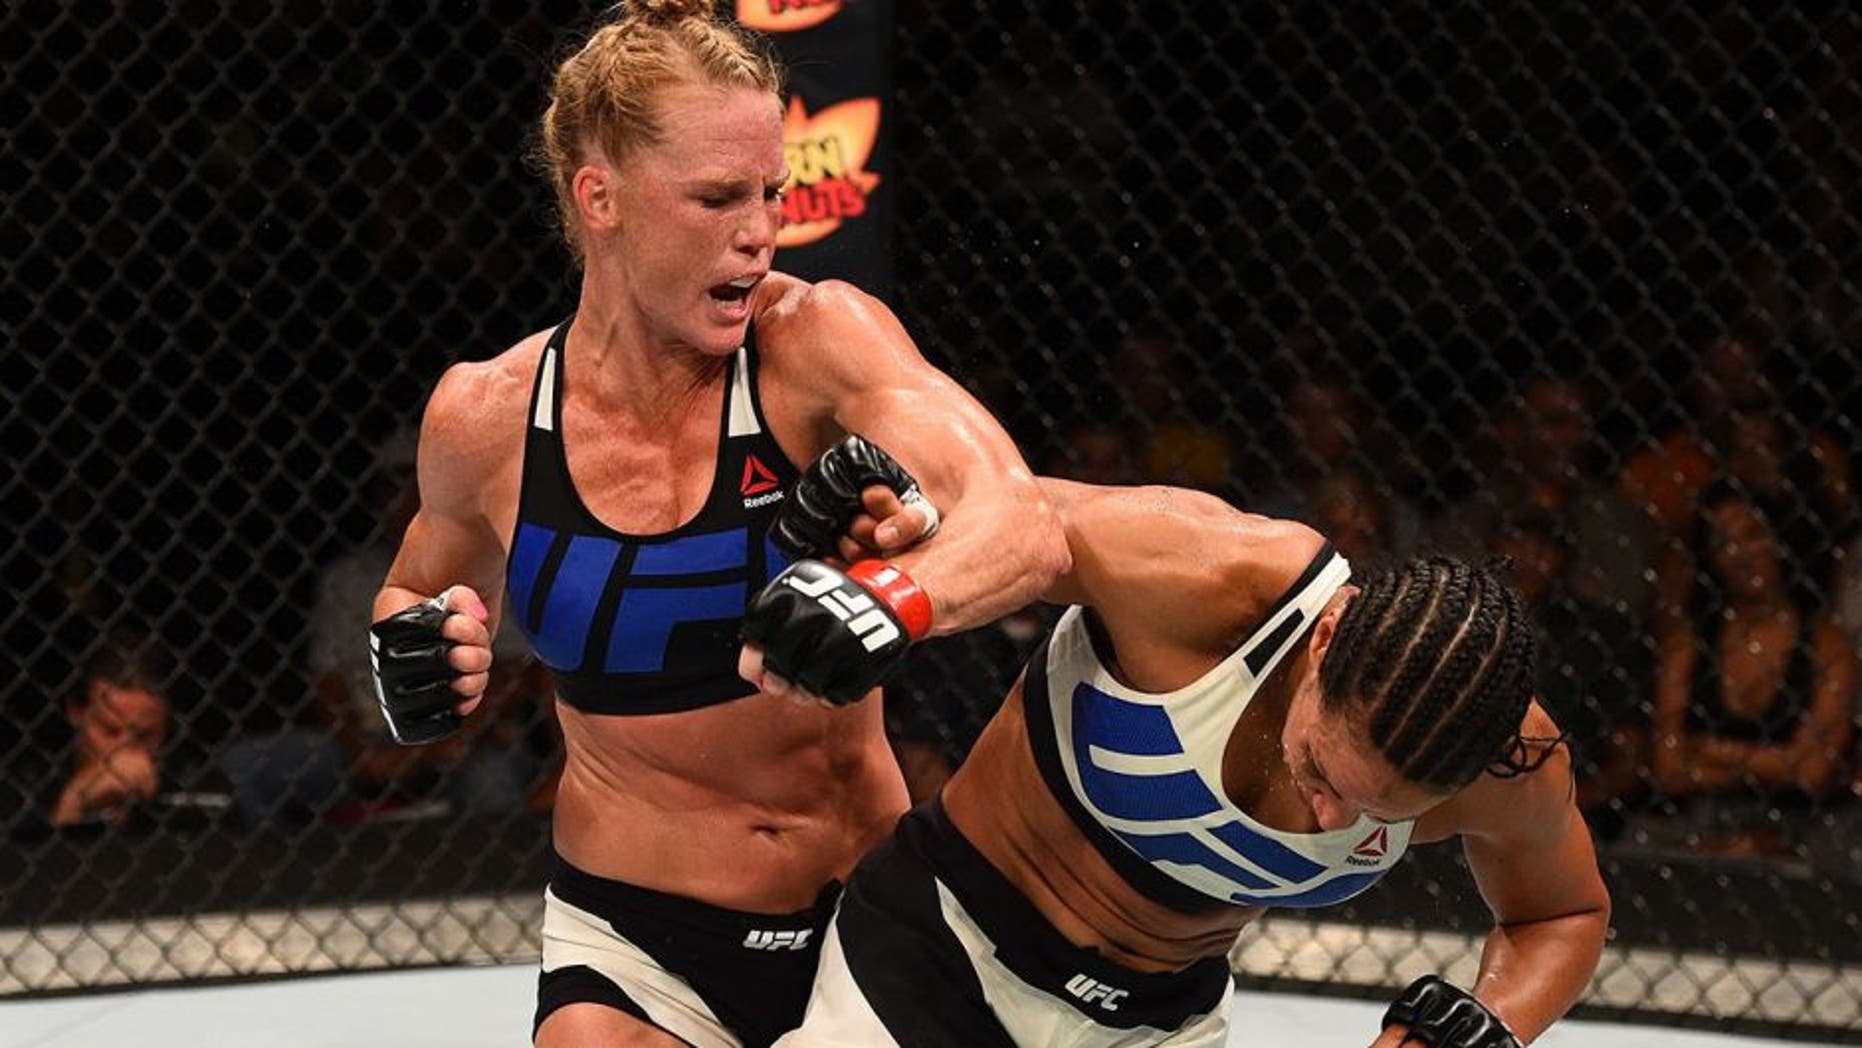 SAN DIEGO, CA - JULY 15: (L-R) Holly Holm punches Marion Reneau in their women's bantamweight bout during the UFC event at the Valley View Casino Center on July 15, 2015 in San Diego, California. (Photo by Jeff Bottari/Zuffa LLC/Zuffa LLC via Getty Images)